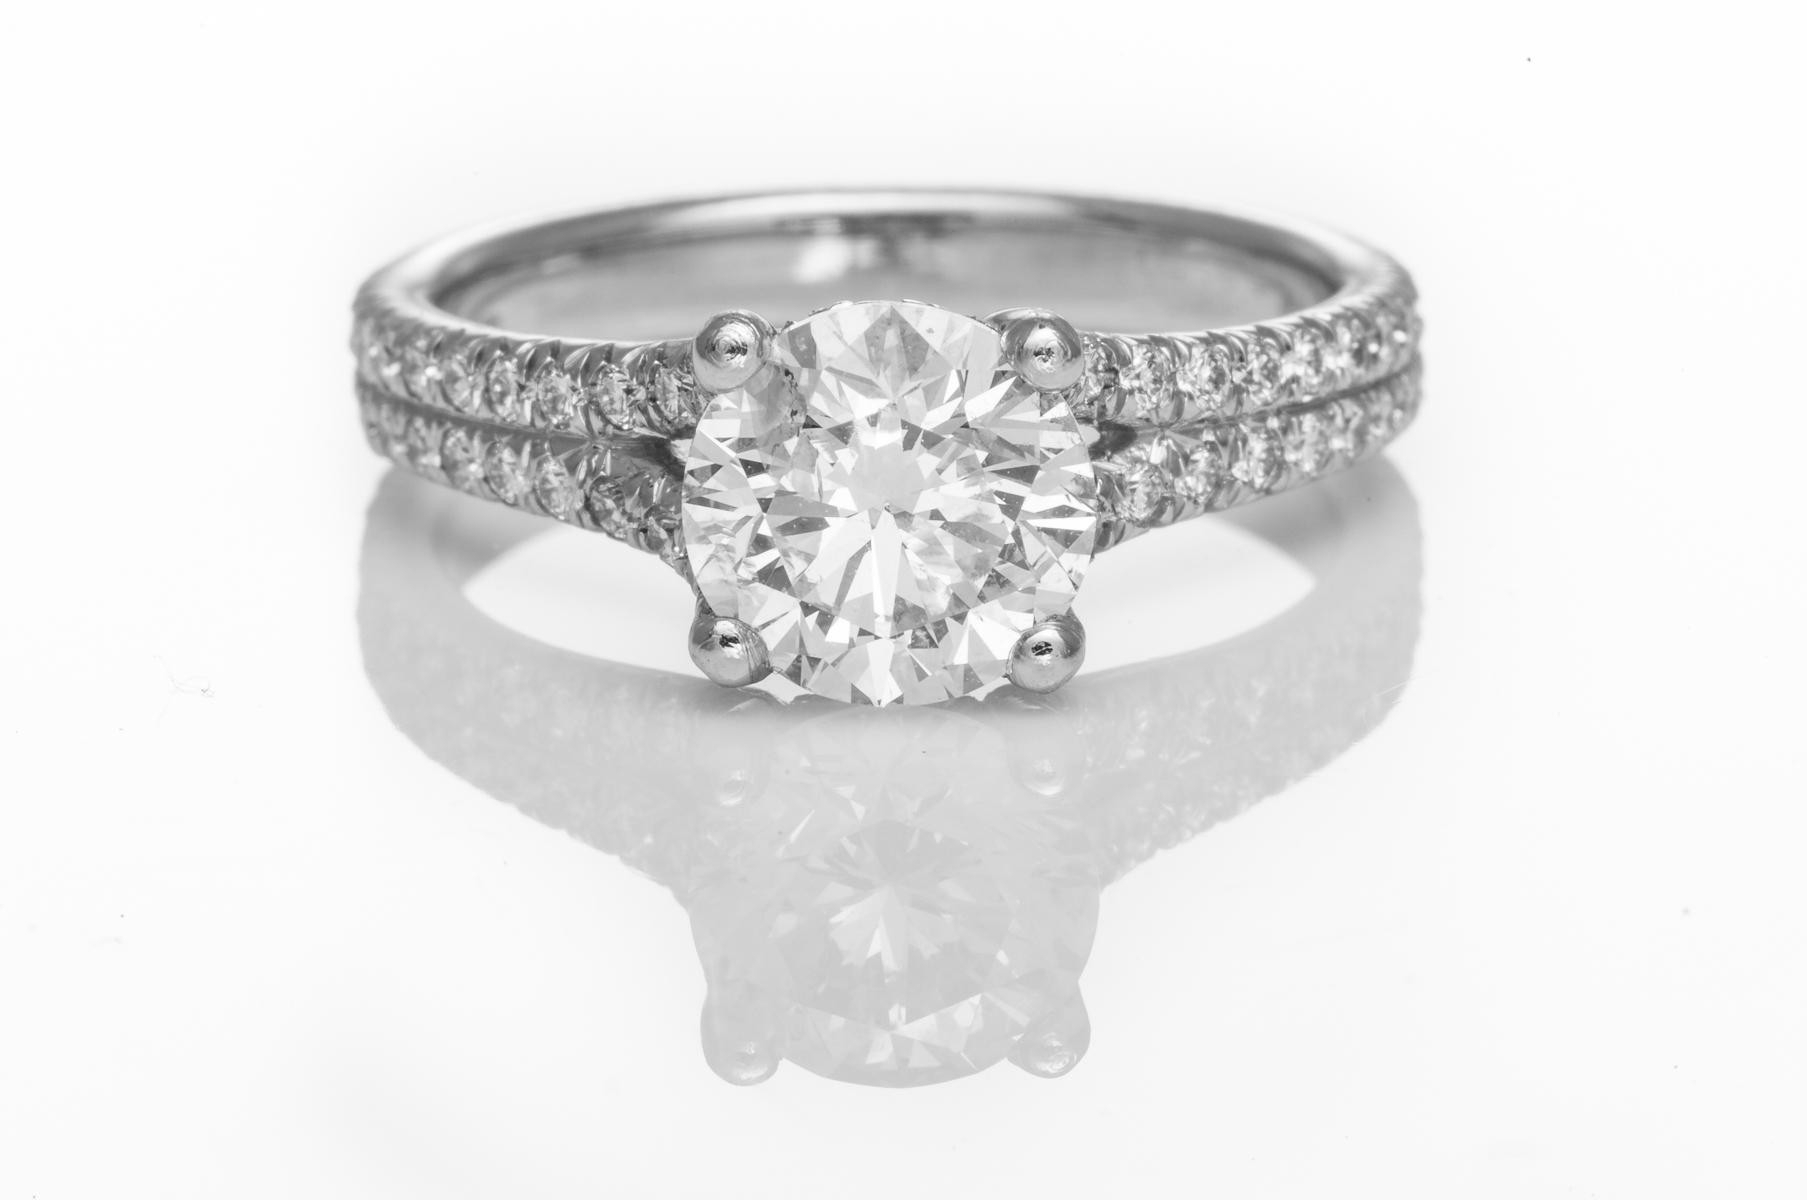 Micro Pave' Diamond Engagement Ring Intended For Most Popular Micropavé Diamond Narrow Wedding Bands (View 13 of 25)